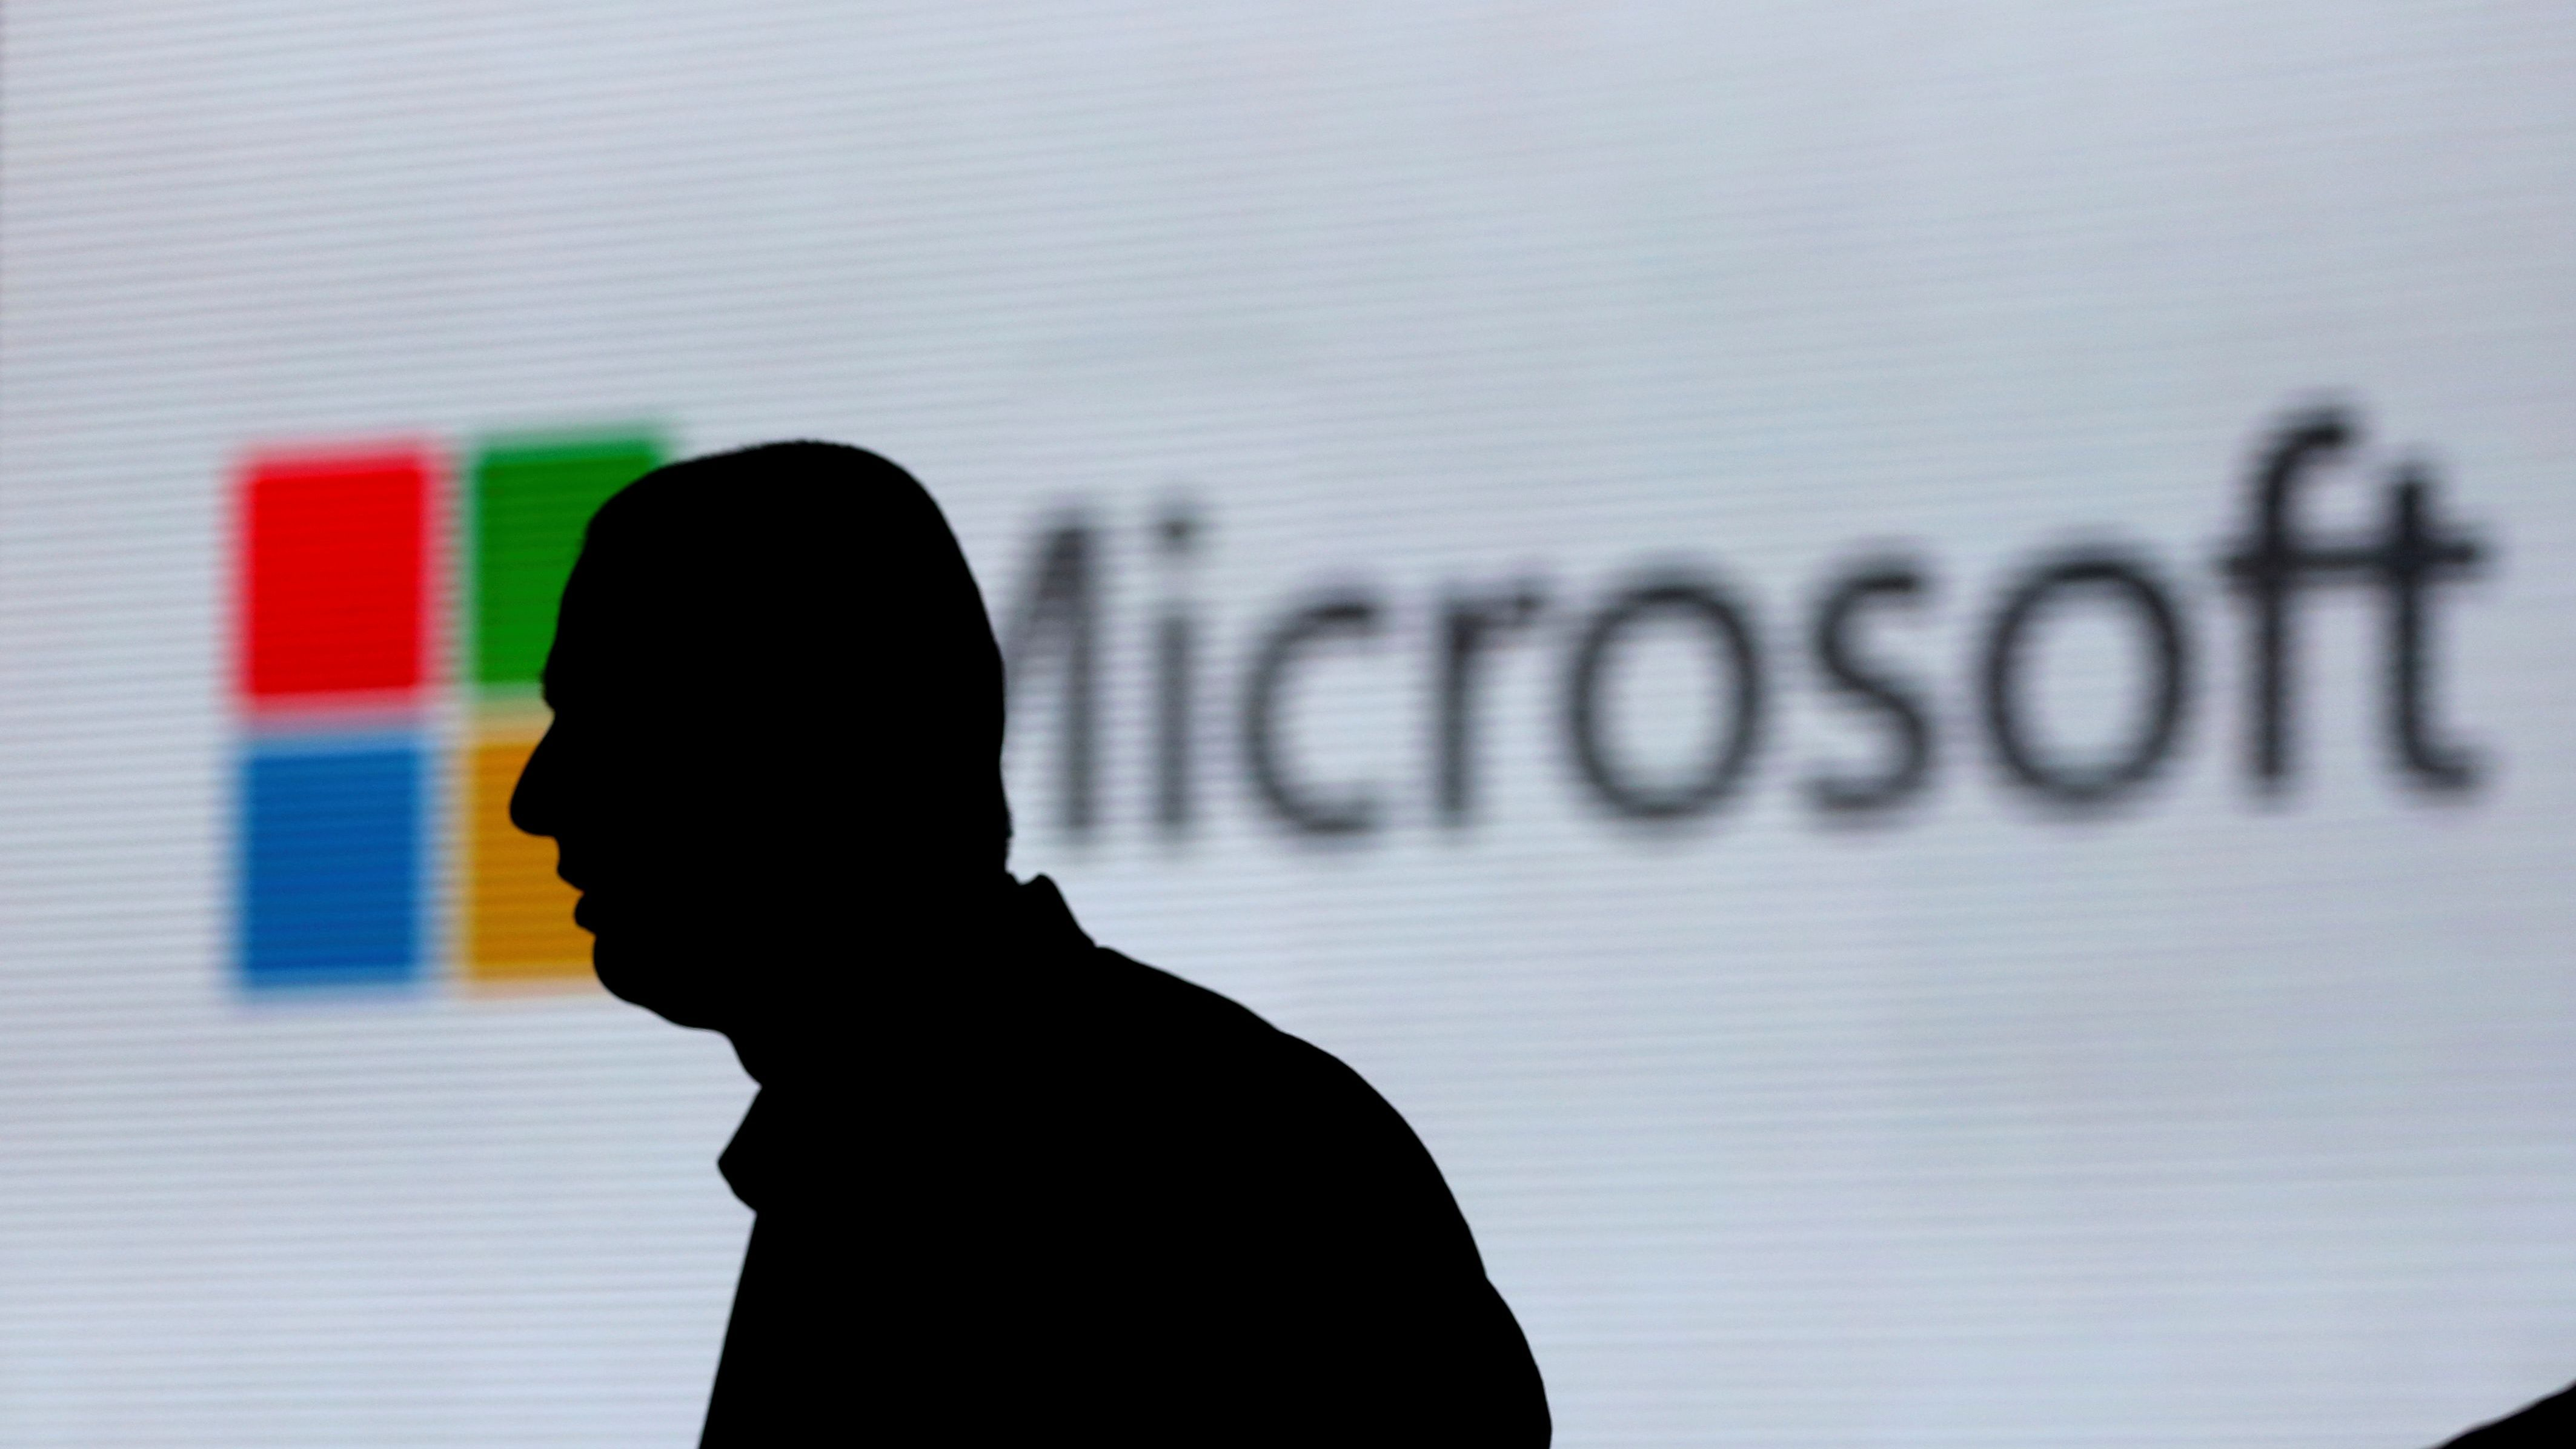 Amid employee uproar, Microsoft is investigating sexual harassment claims overlooked by HR